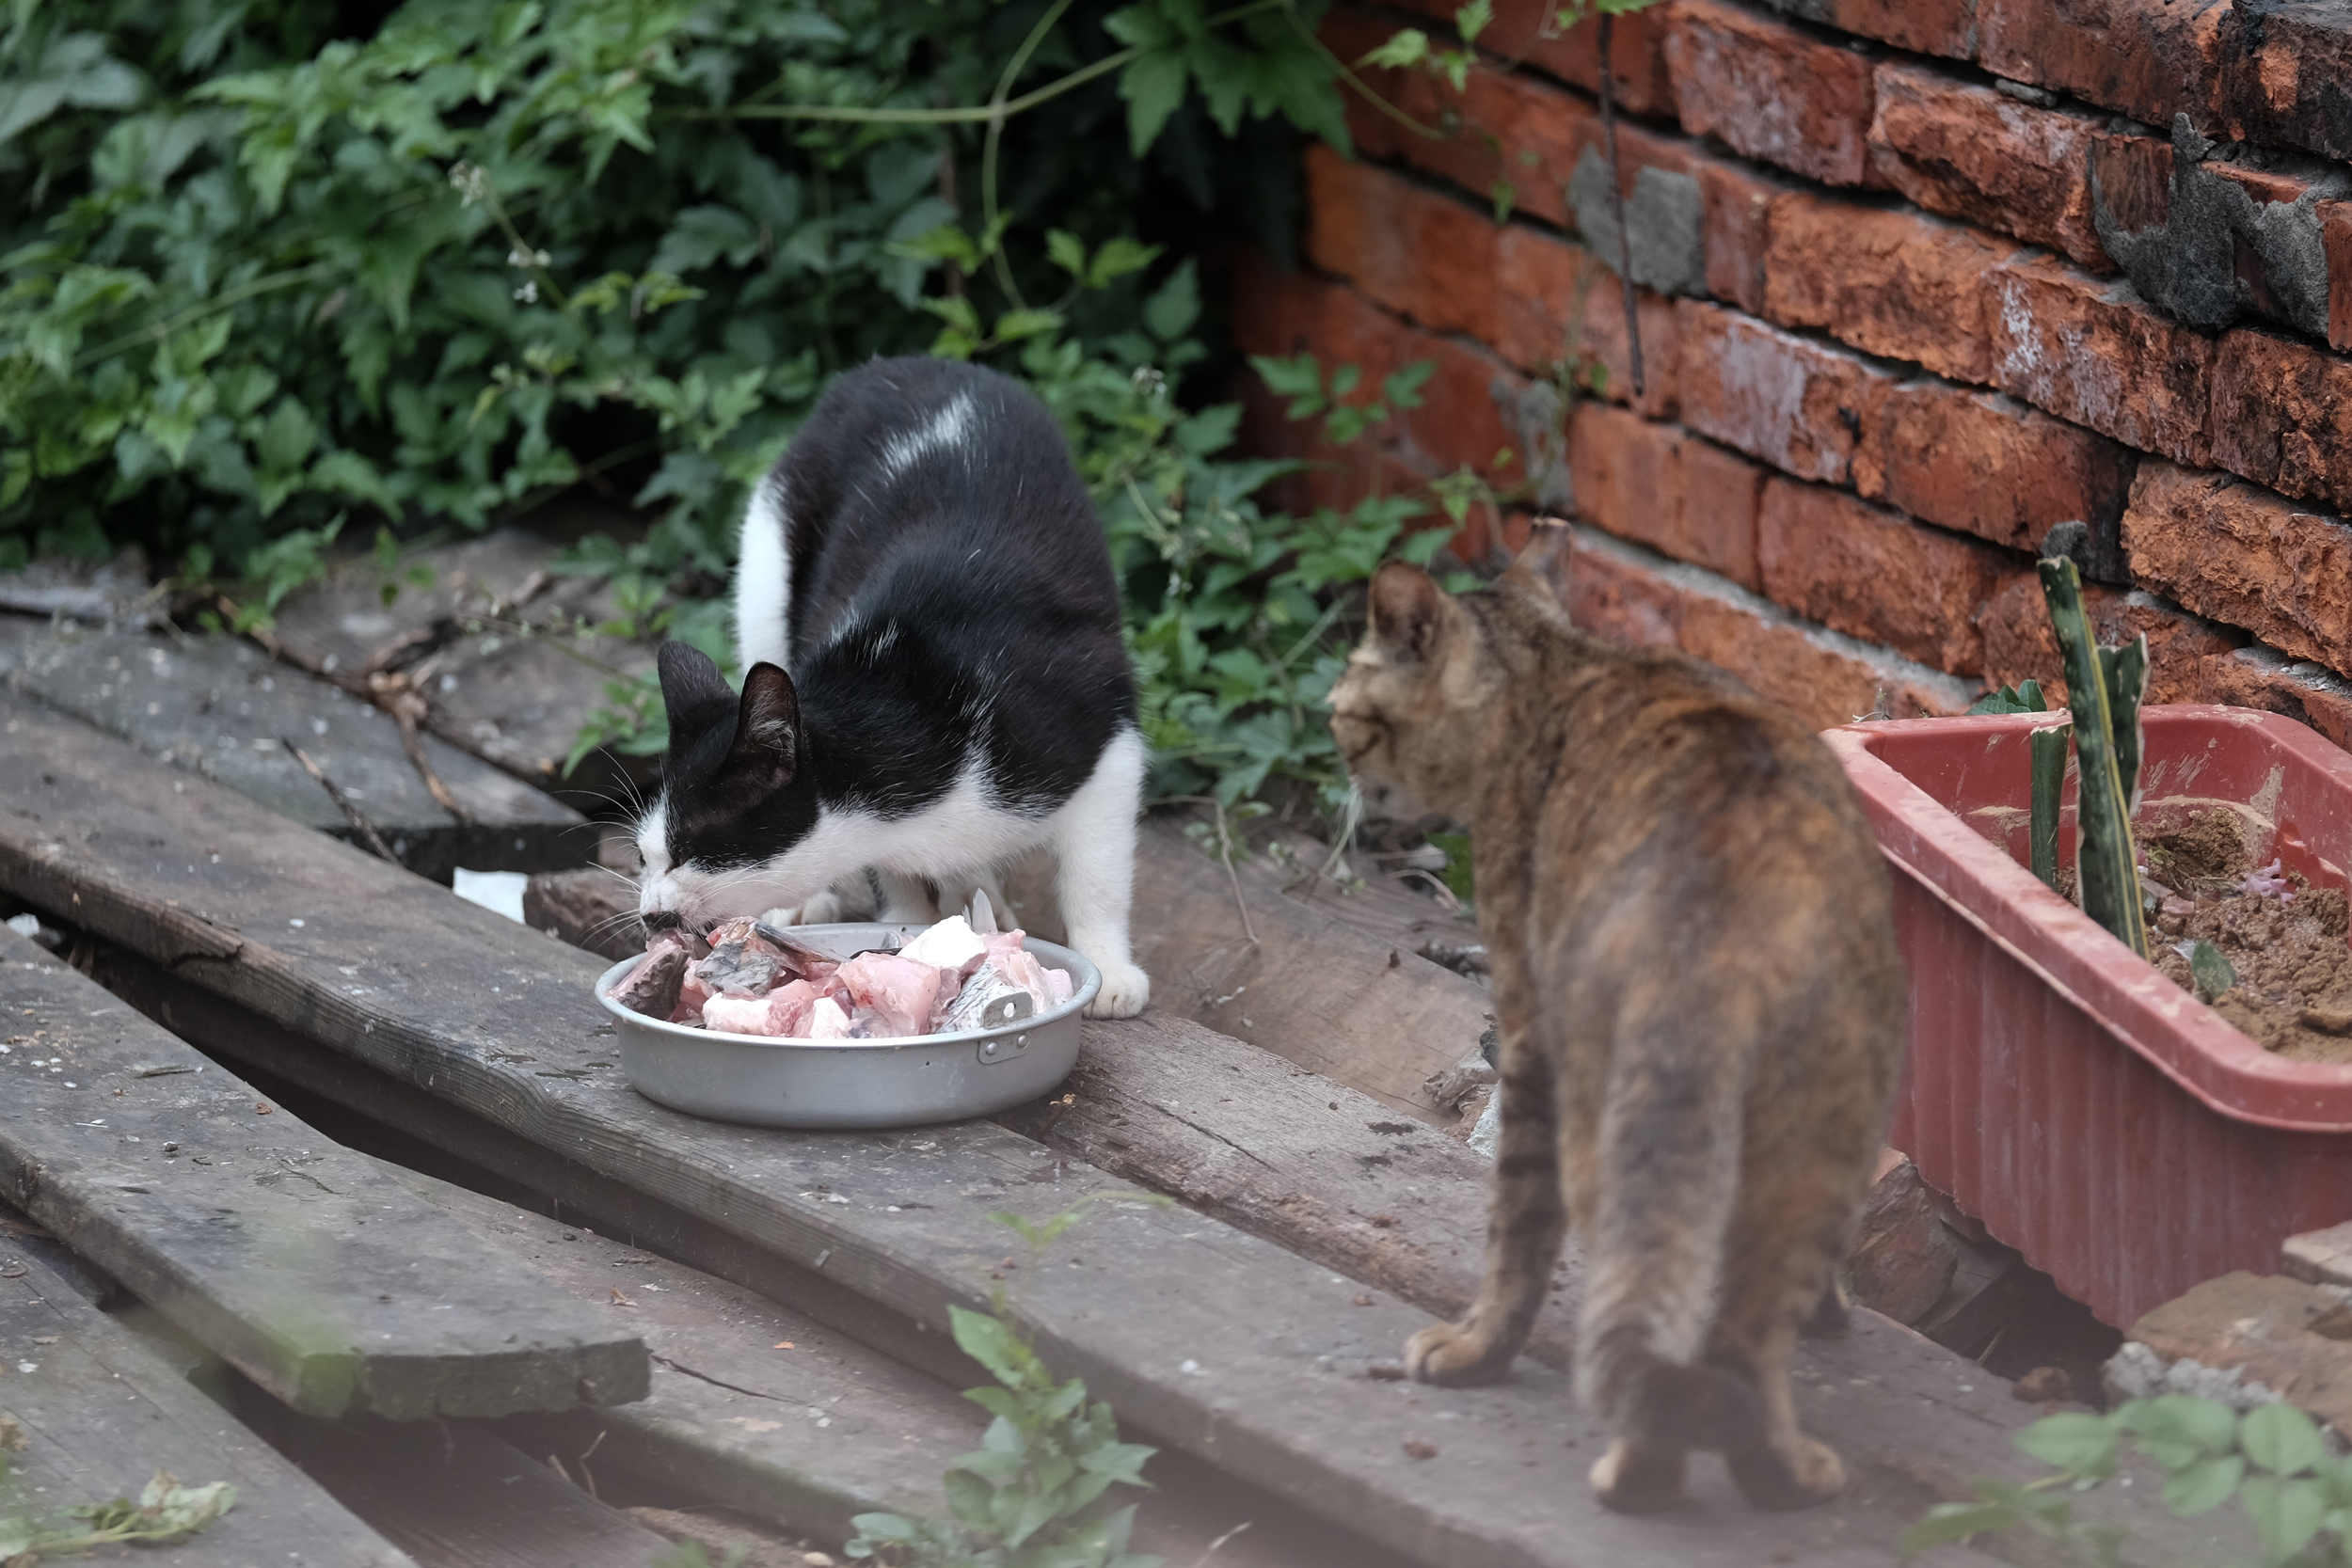 Happy cats chowing down on their raw fish dinner. Danshui 淡水